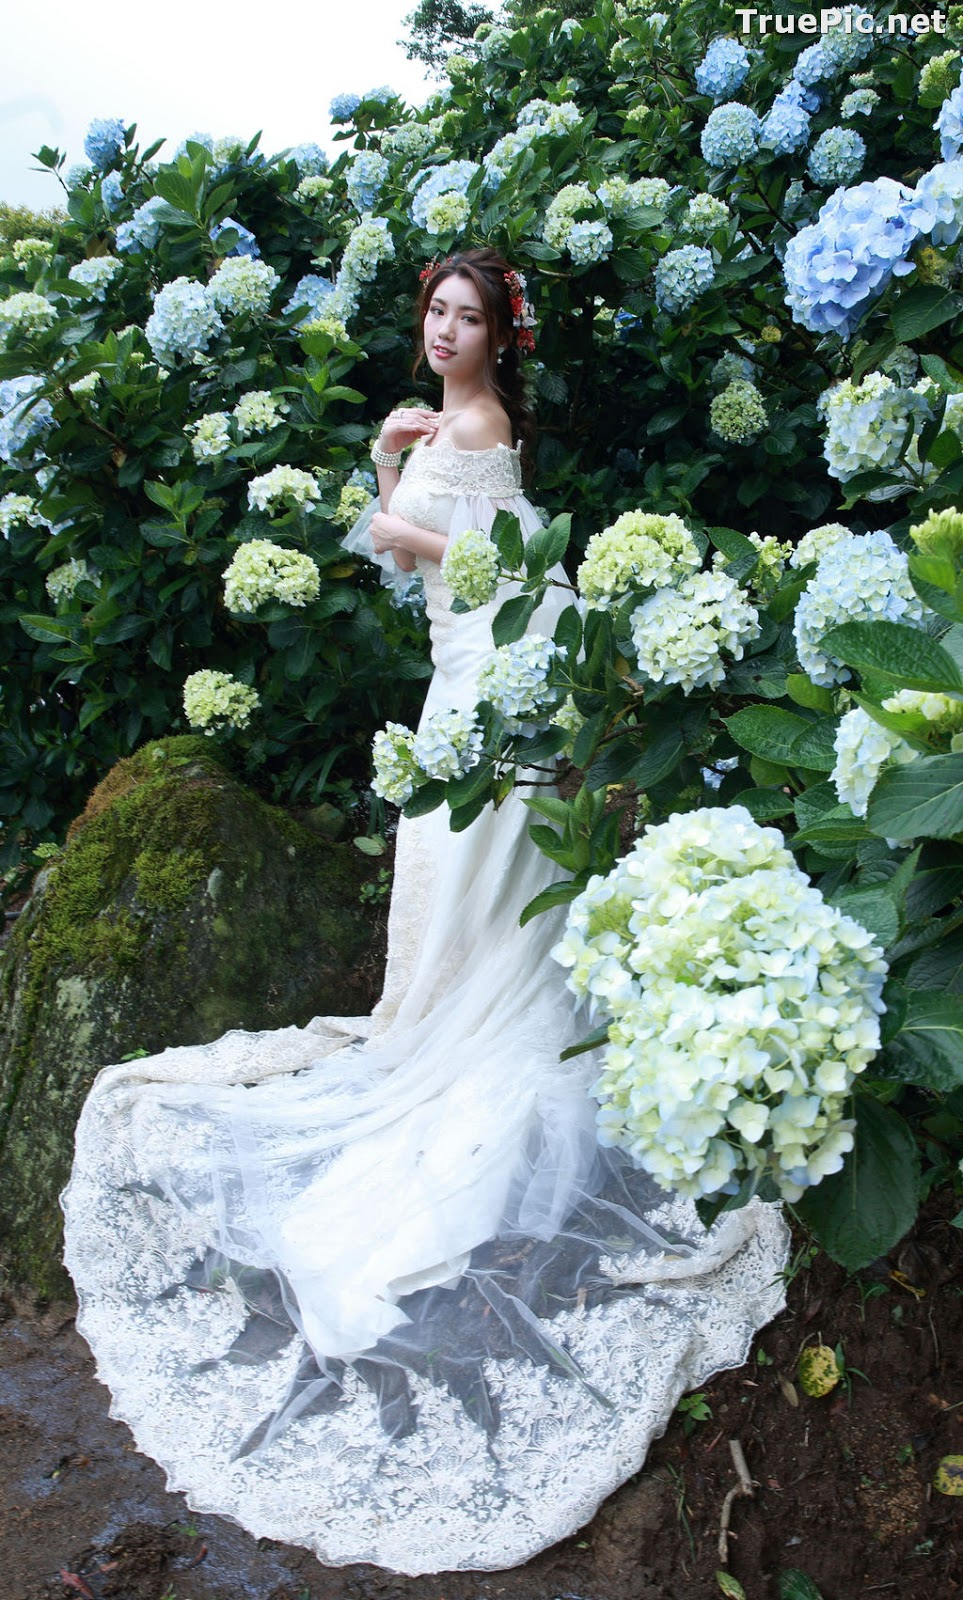 Image Taiwanese Model - 張倫甄 - Beautiful Bride and Hydrangea Flowers - TruePic.net - Picture-6